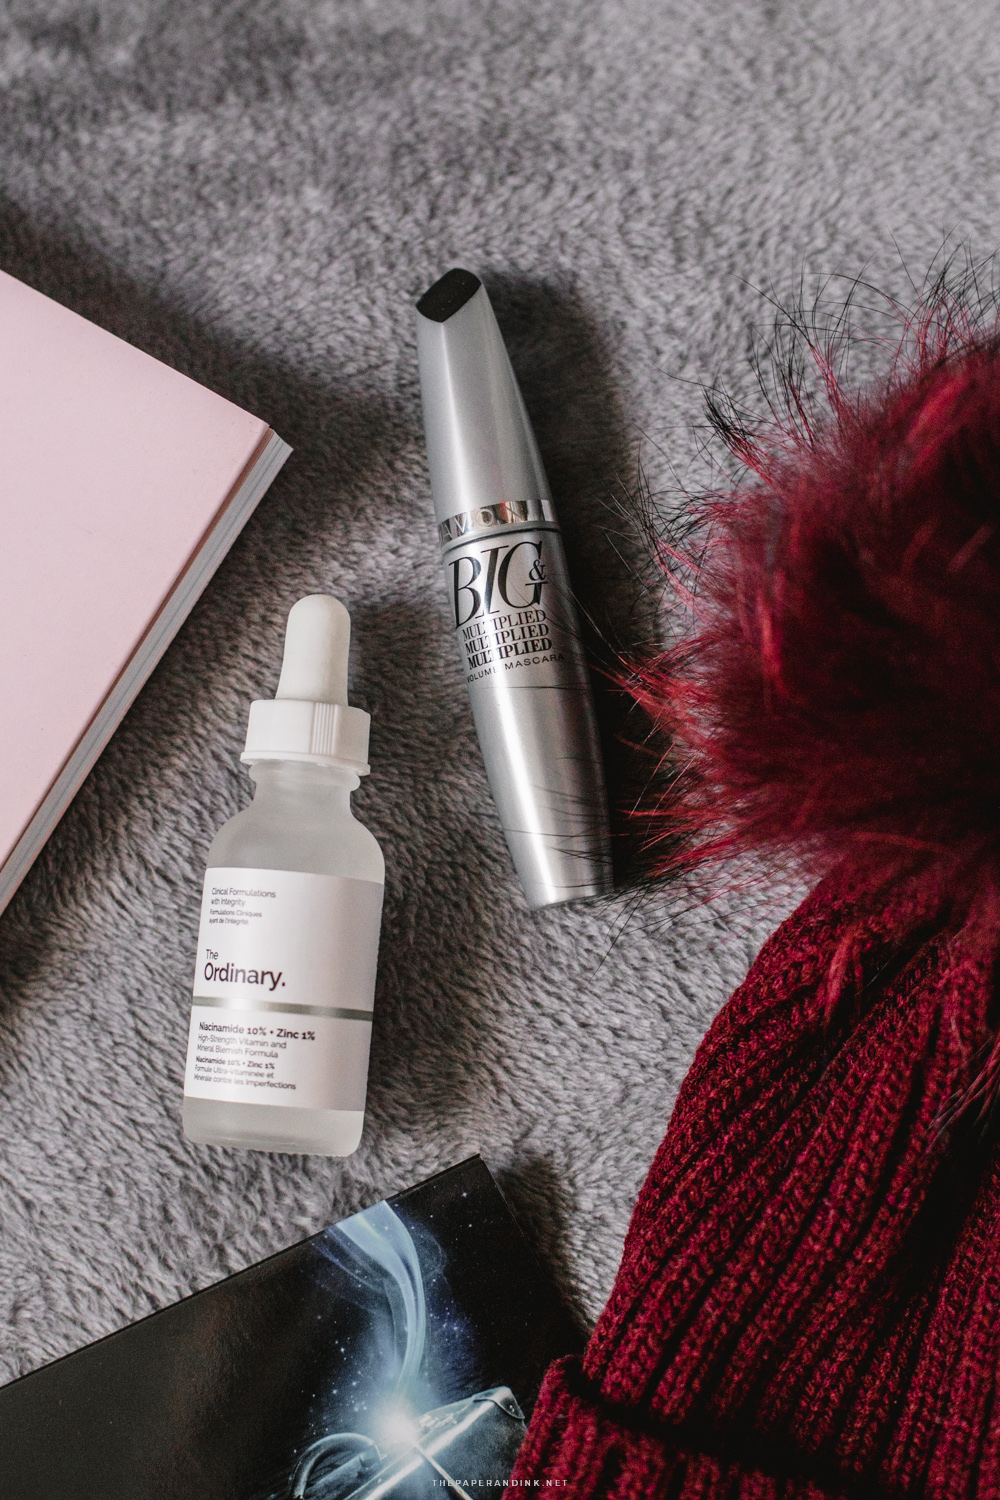 Big and Multiplied mascara by Avon and Niacinamide and Zync Serum by The Ordinary.